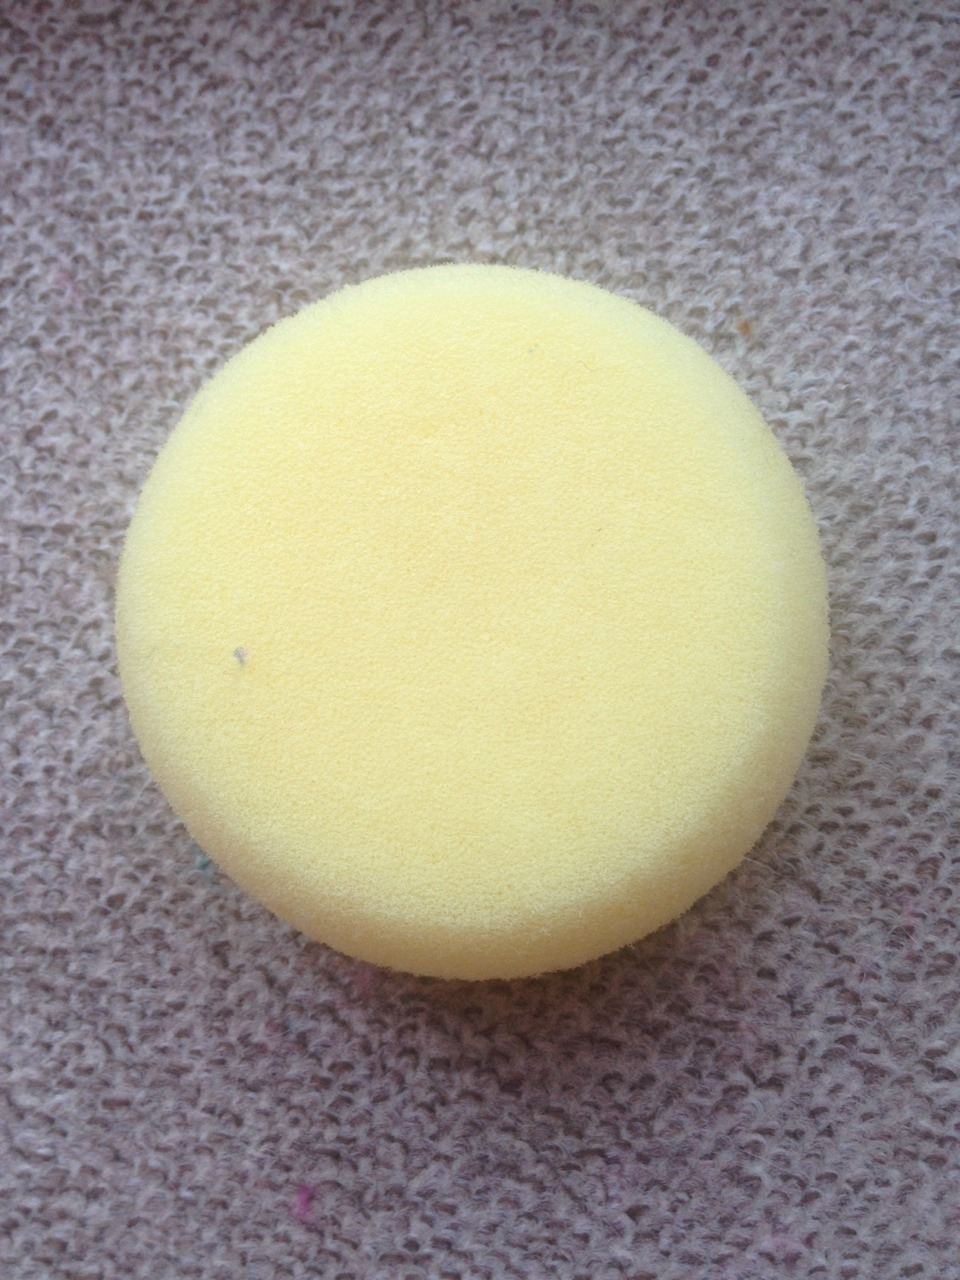 Cut your sponge into a circle mine was already done for me